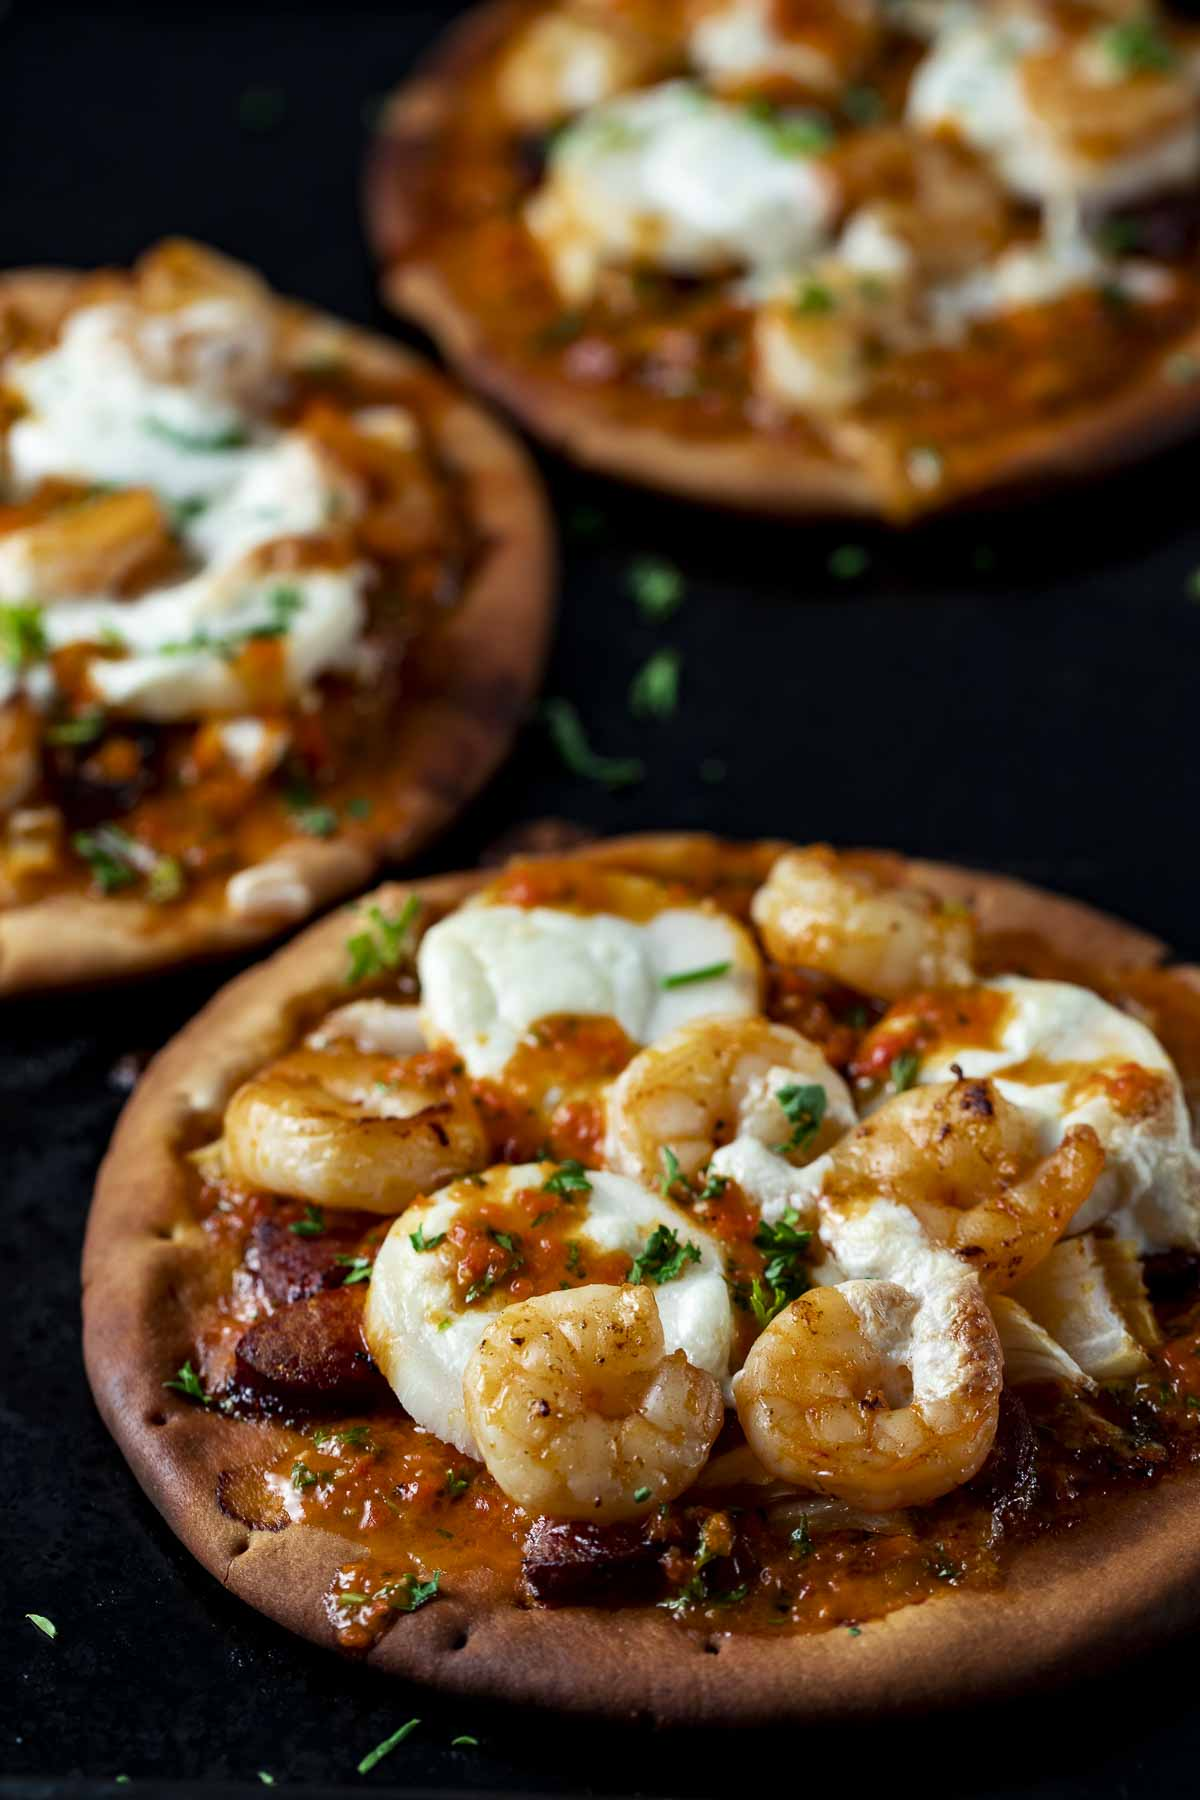 pita bread pizza topped with shrimp, sausage and cheese